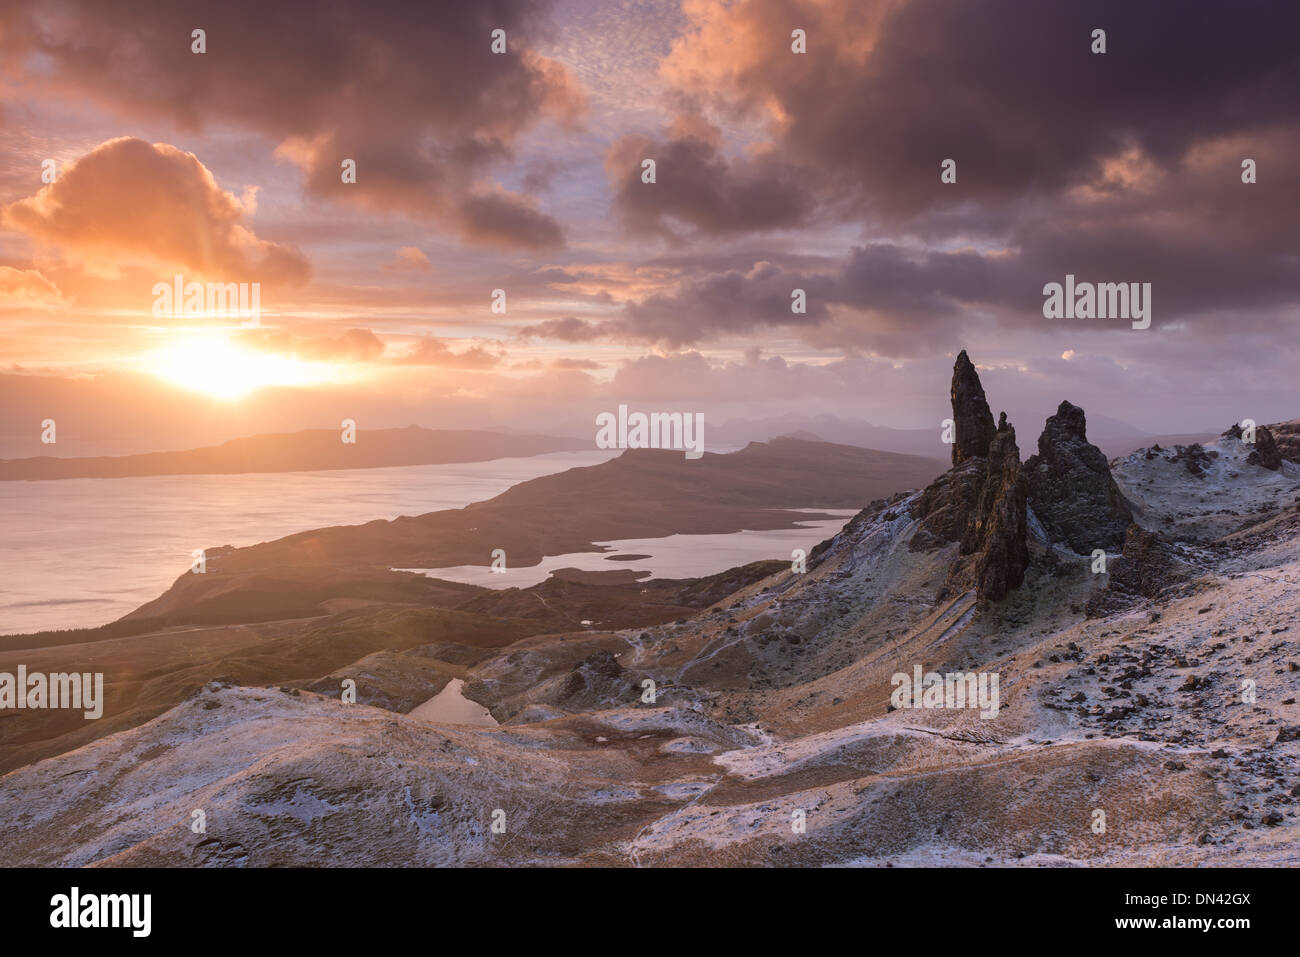 Spectacular sunrise over the Old Man of Storr, Isle of Skye, Scotland. Winter (December) 2013. - Stock Image